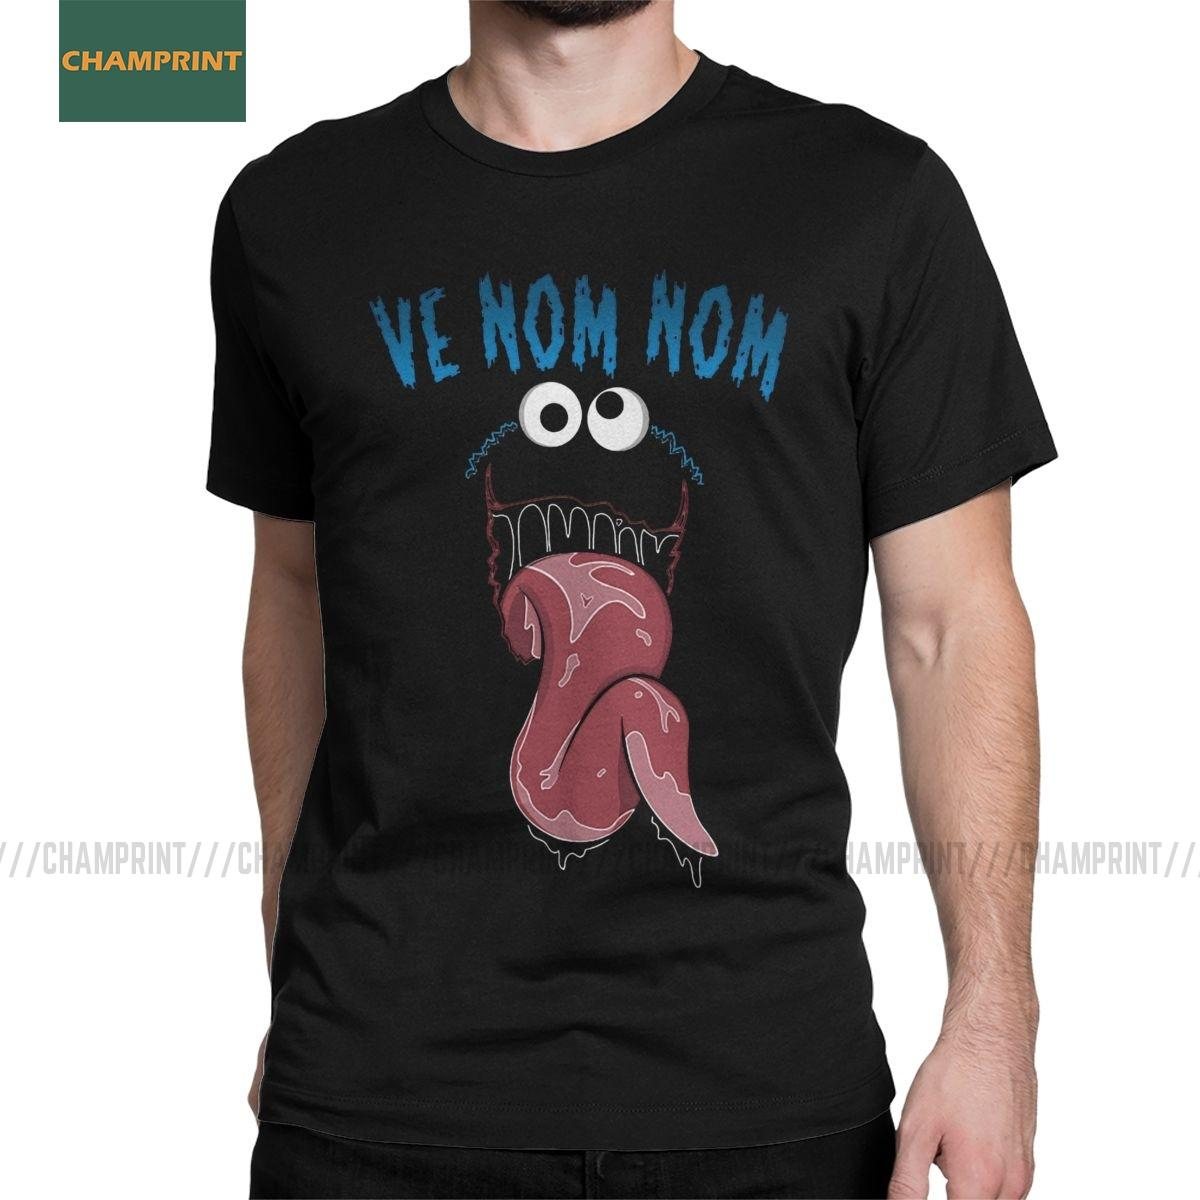 Uomo T-shirt Ve Nom Nom Cookie Monster Umorismo Cotton Tee Shirt manica corta T Shirt O Collo Tops Regalo di compleanno